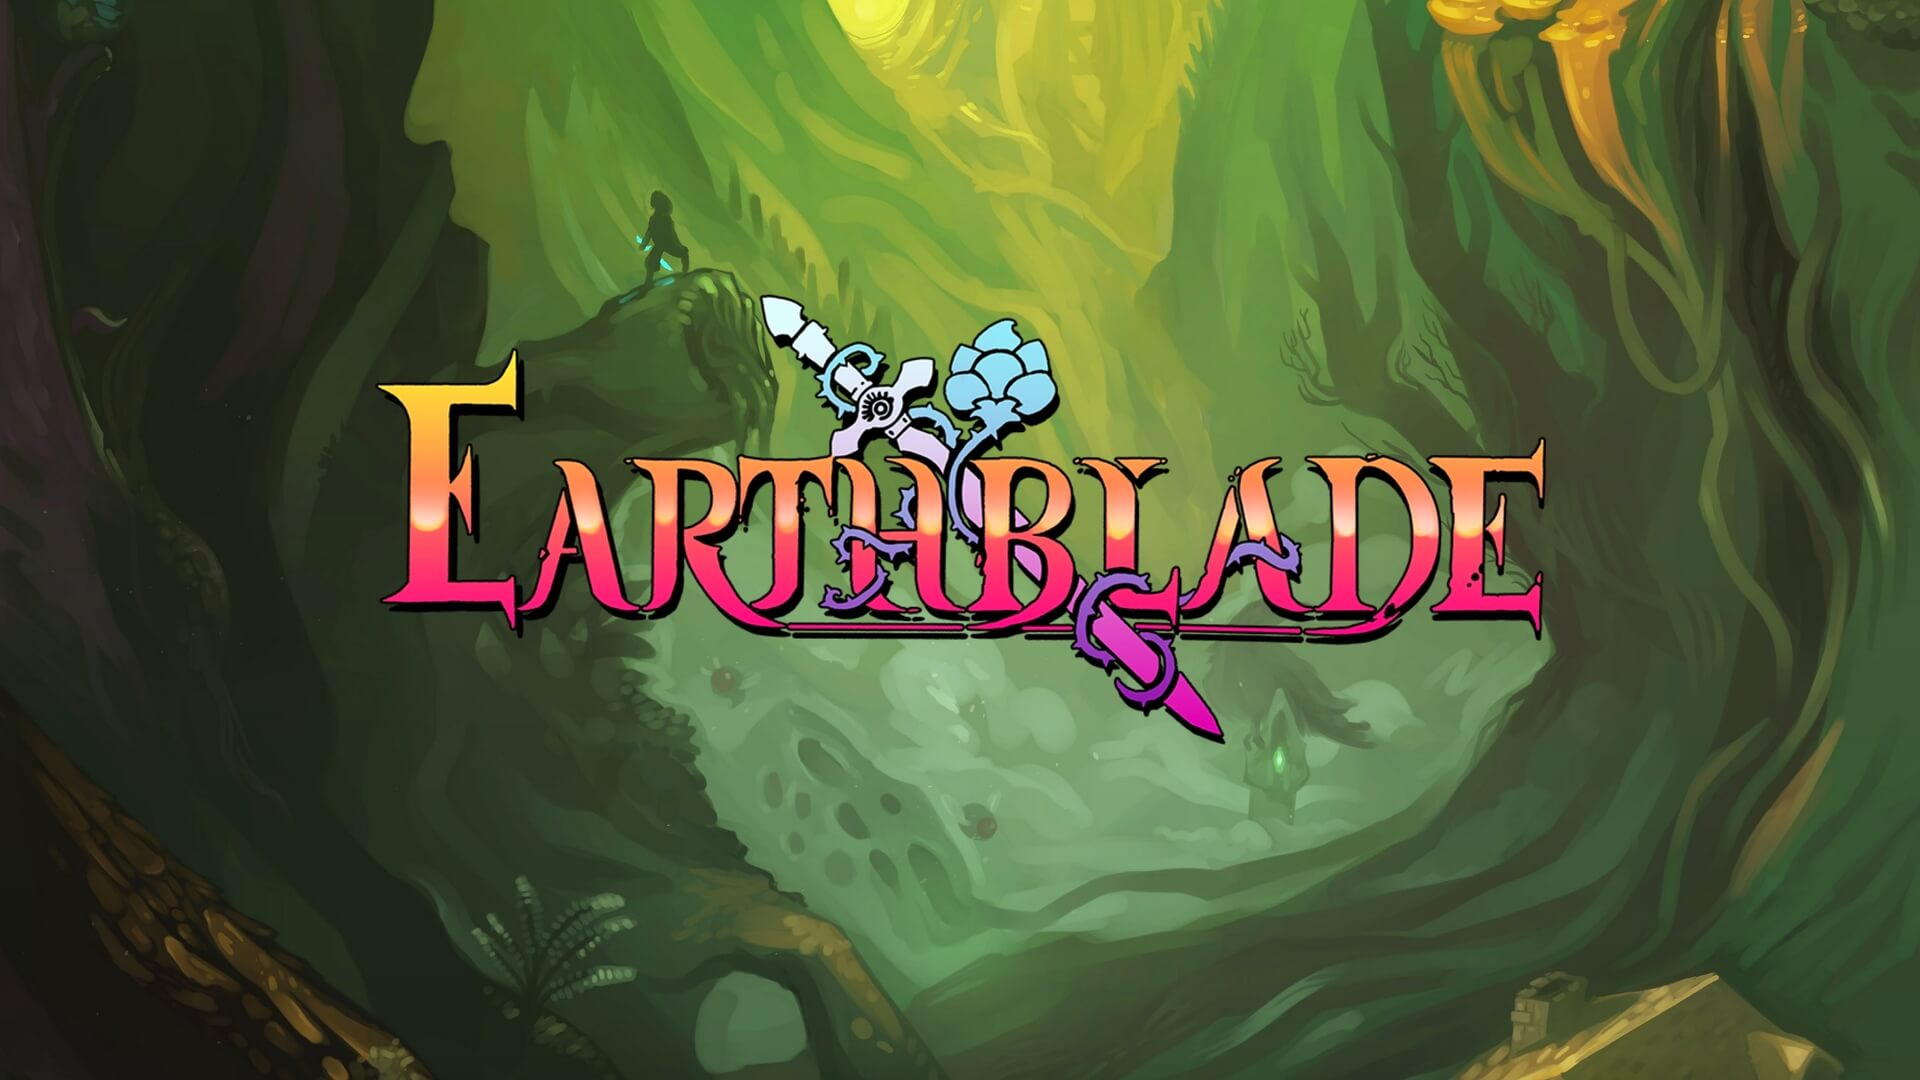 Earthblade Is The Next Game From Celeste Developers